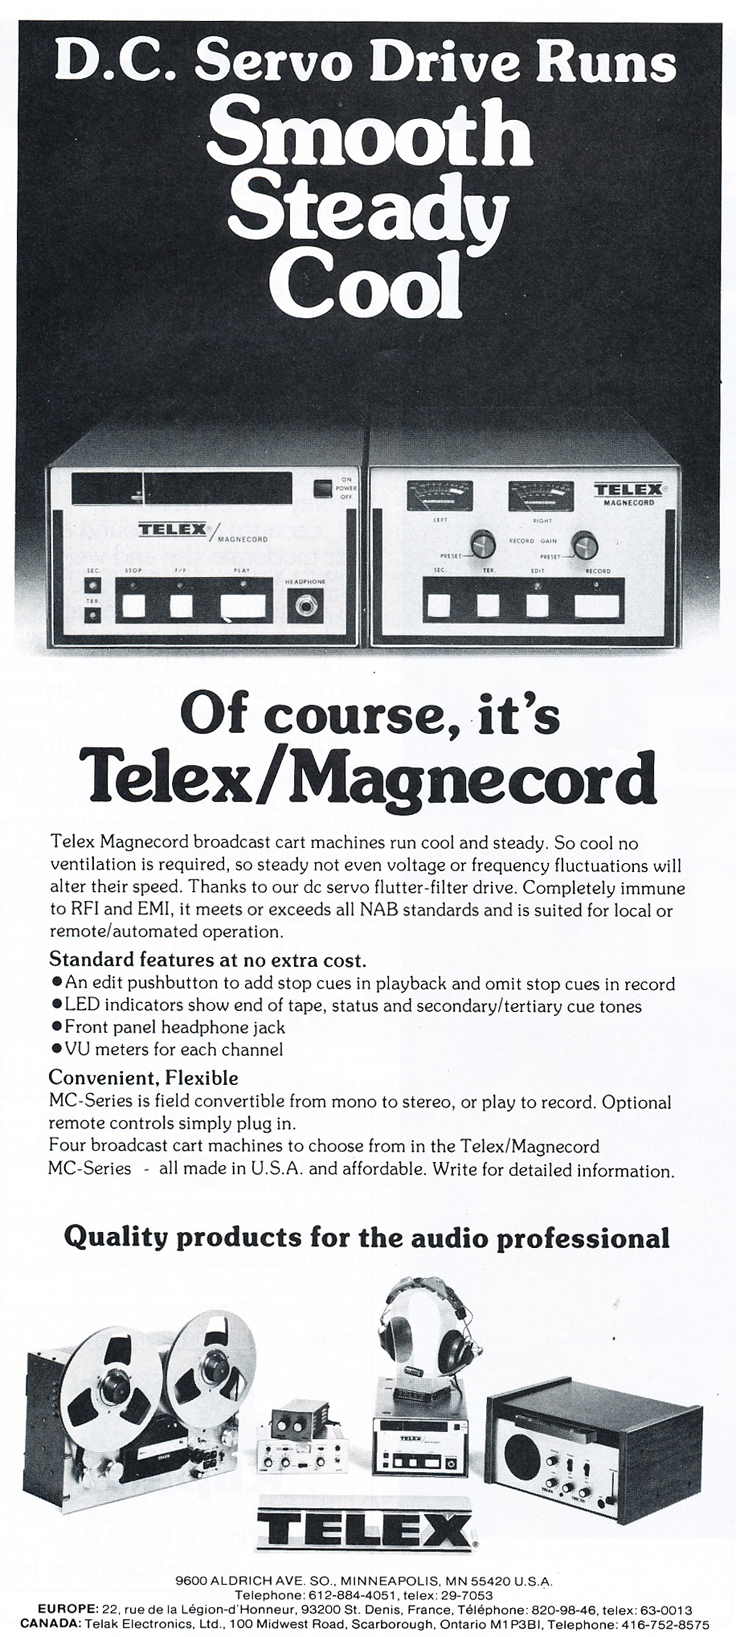 1979 ad for the Magnecord Telex broadcast cart recorder in the Reel2ReelTexas.com MOMSR vintage recording collection